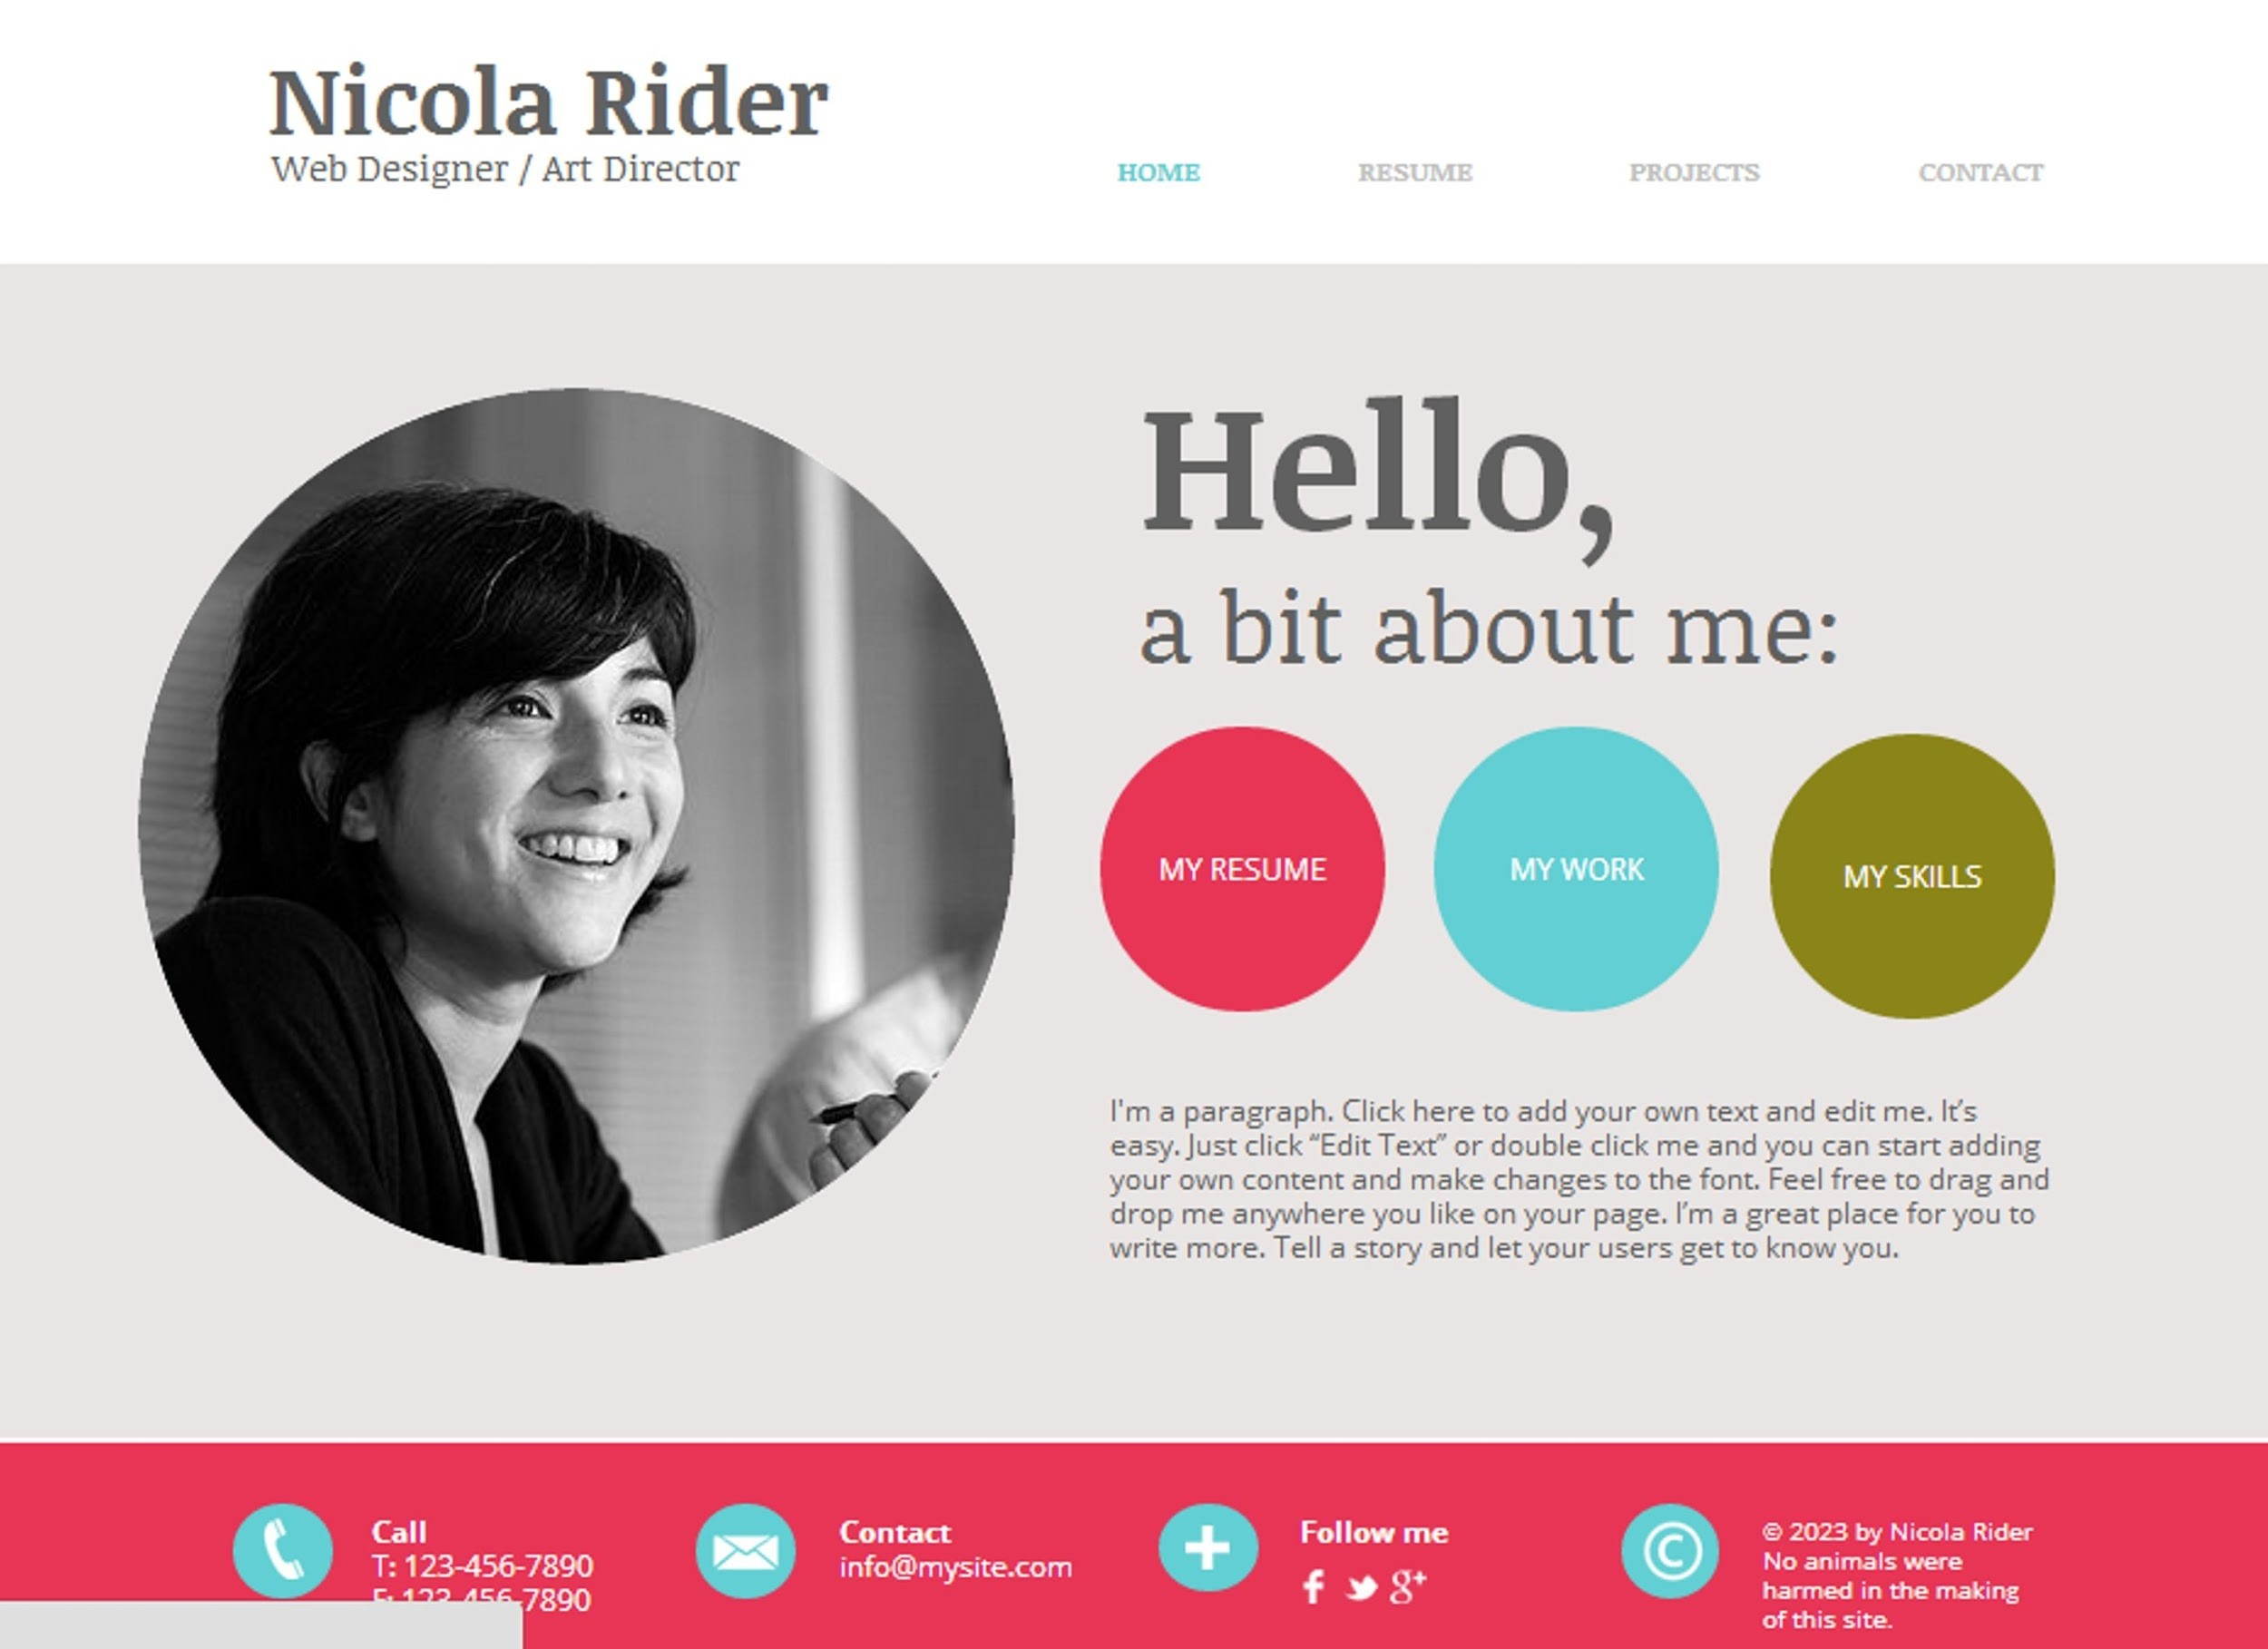 freelancer Website Nicola Rider